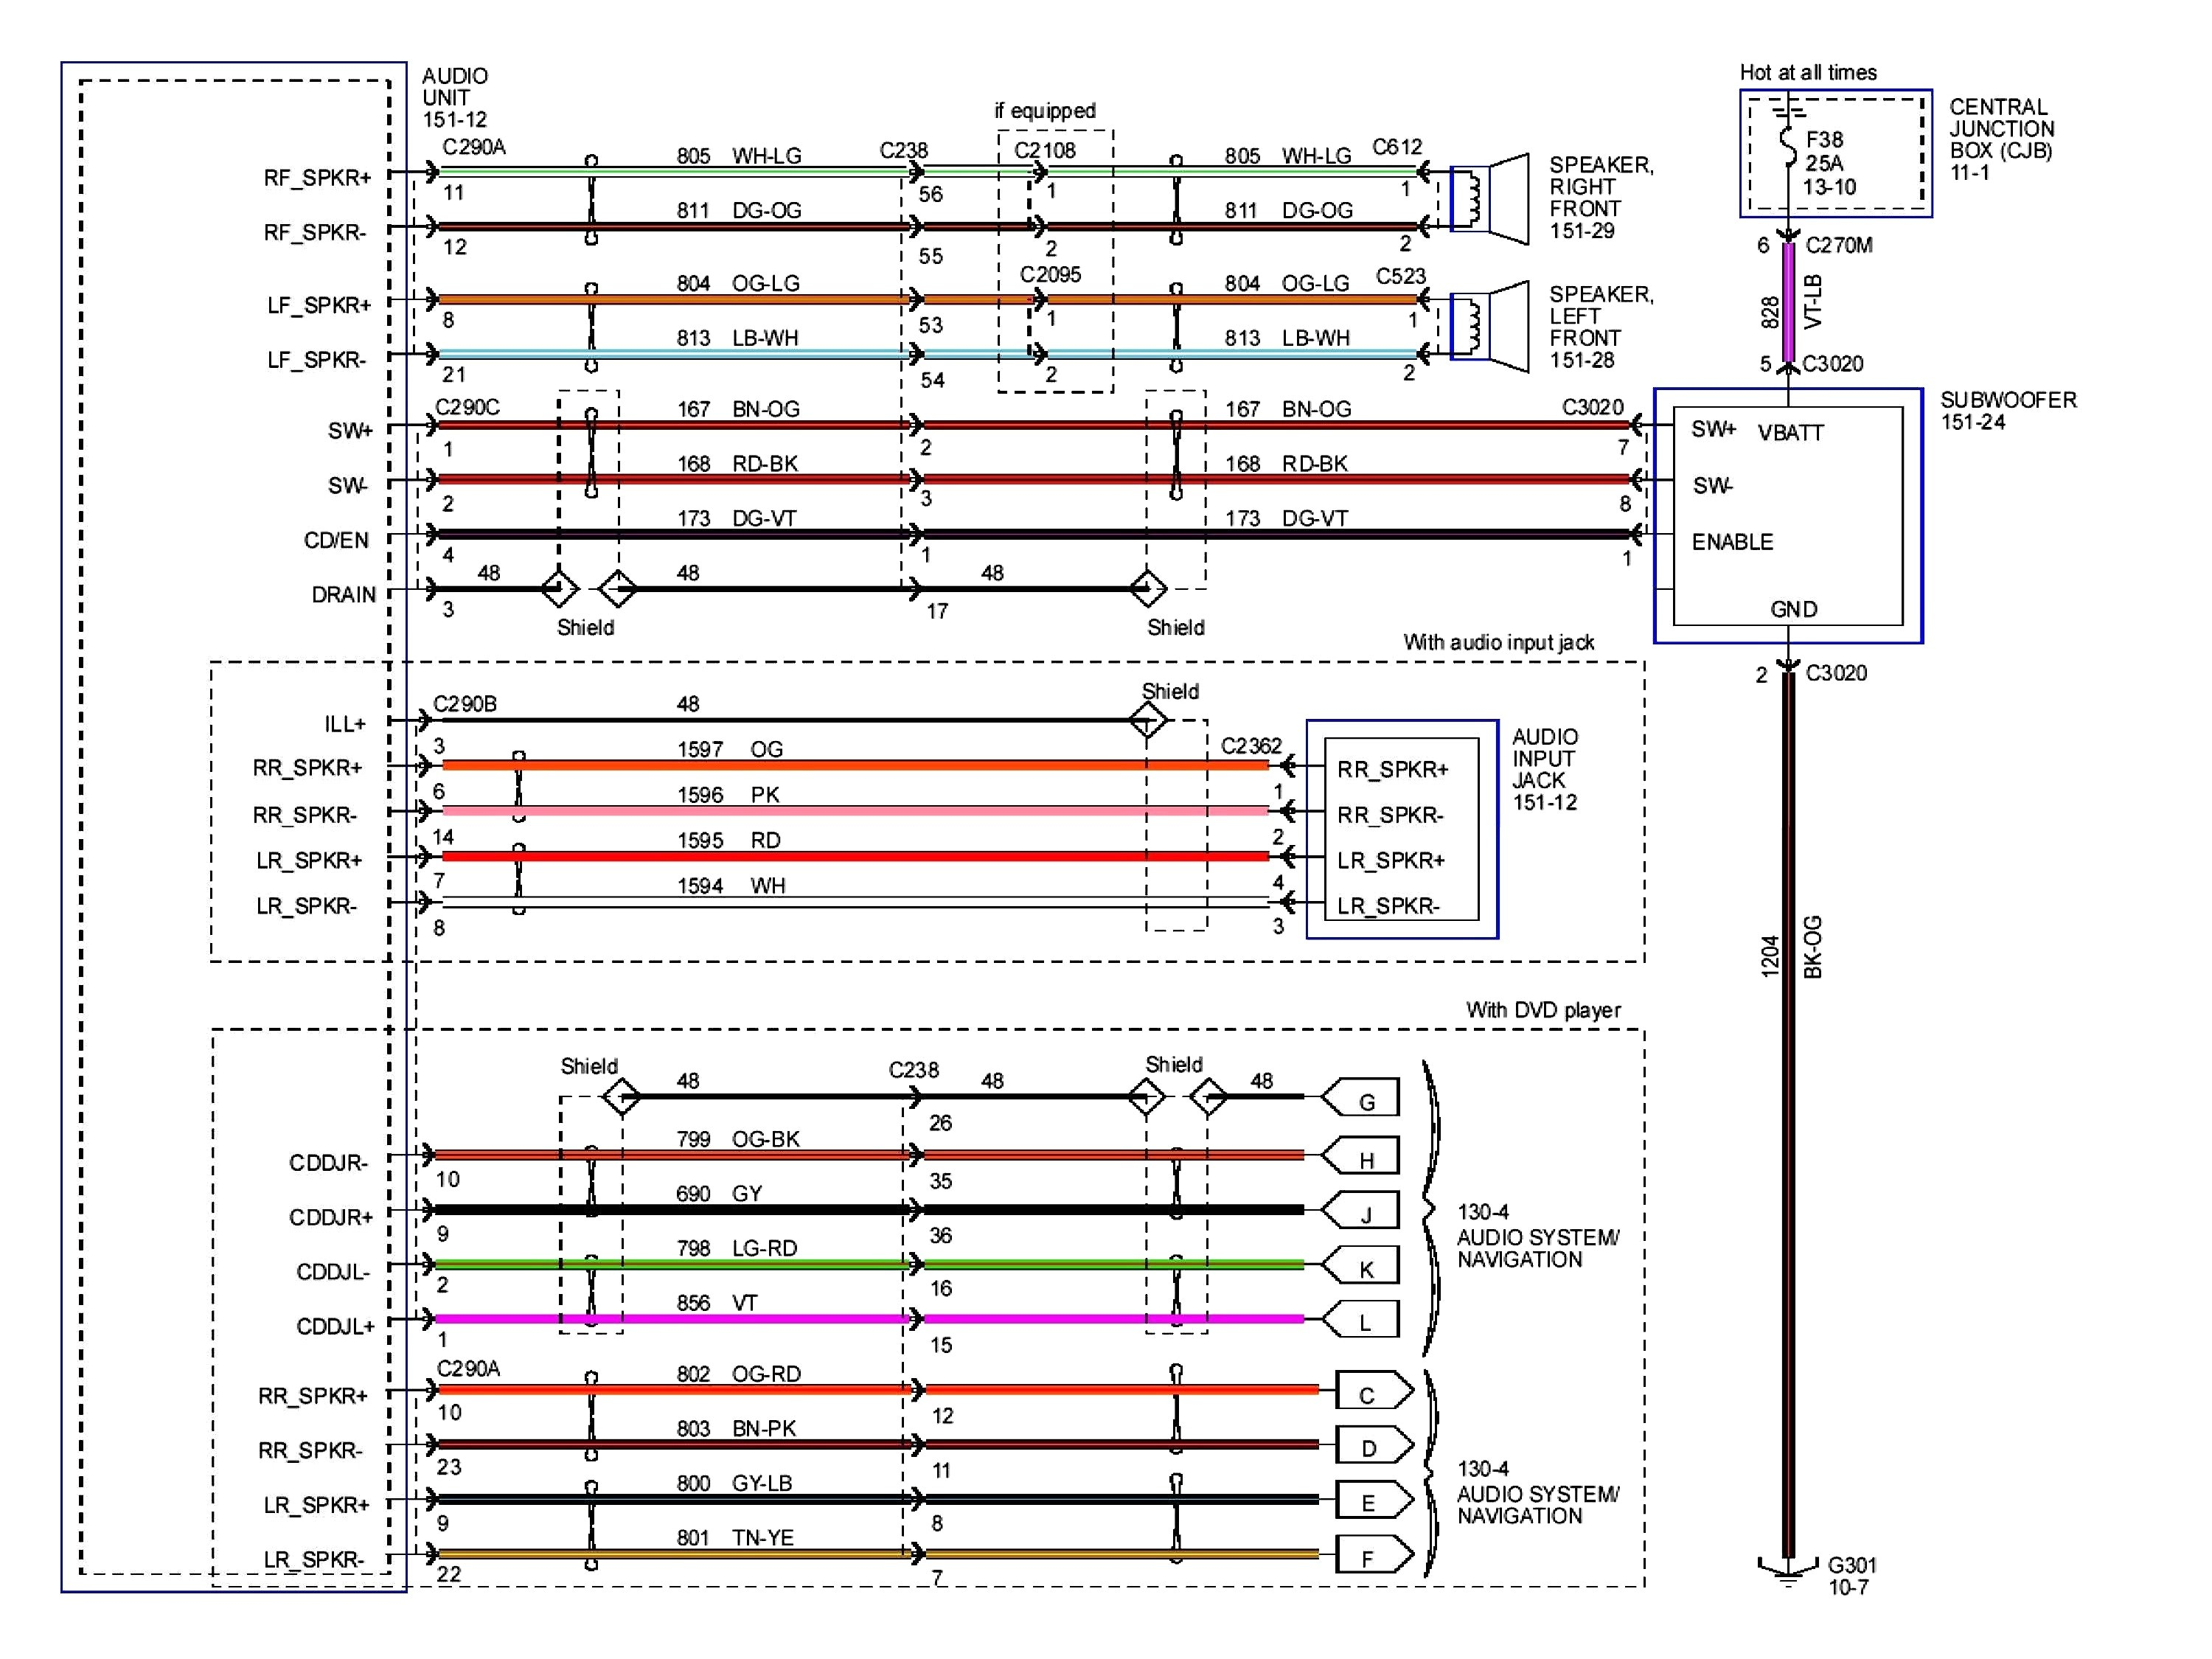 2004 ford Ranger Wiring Diagram I Need the Wiring Diagram for A 1996 ford Explorer Radio 1997 Also Of 2004 ford Ranger Wiring Diagram